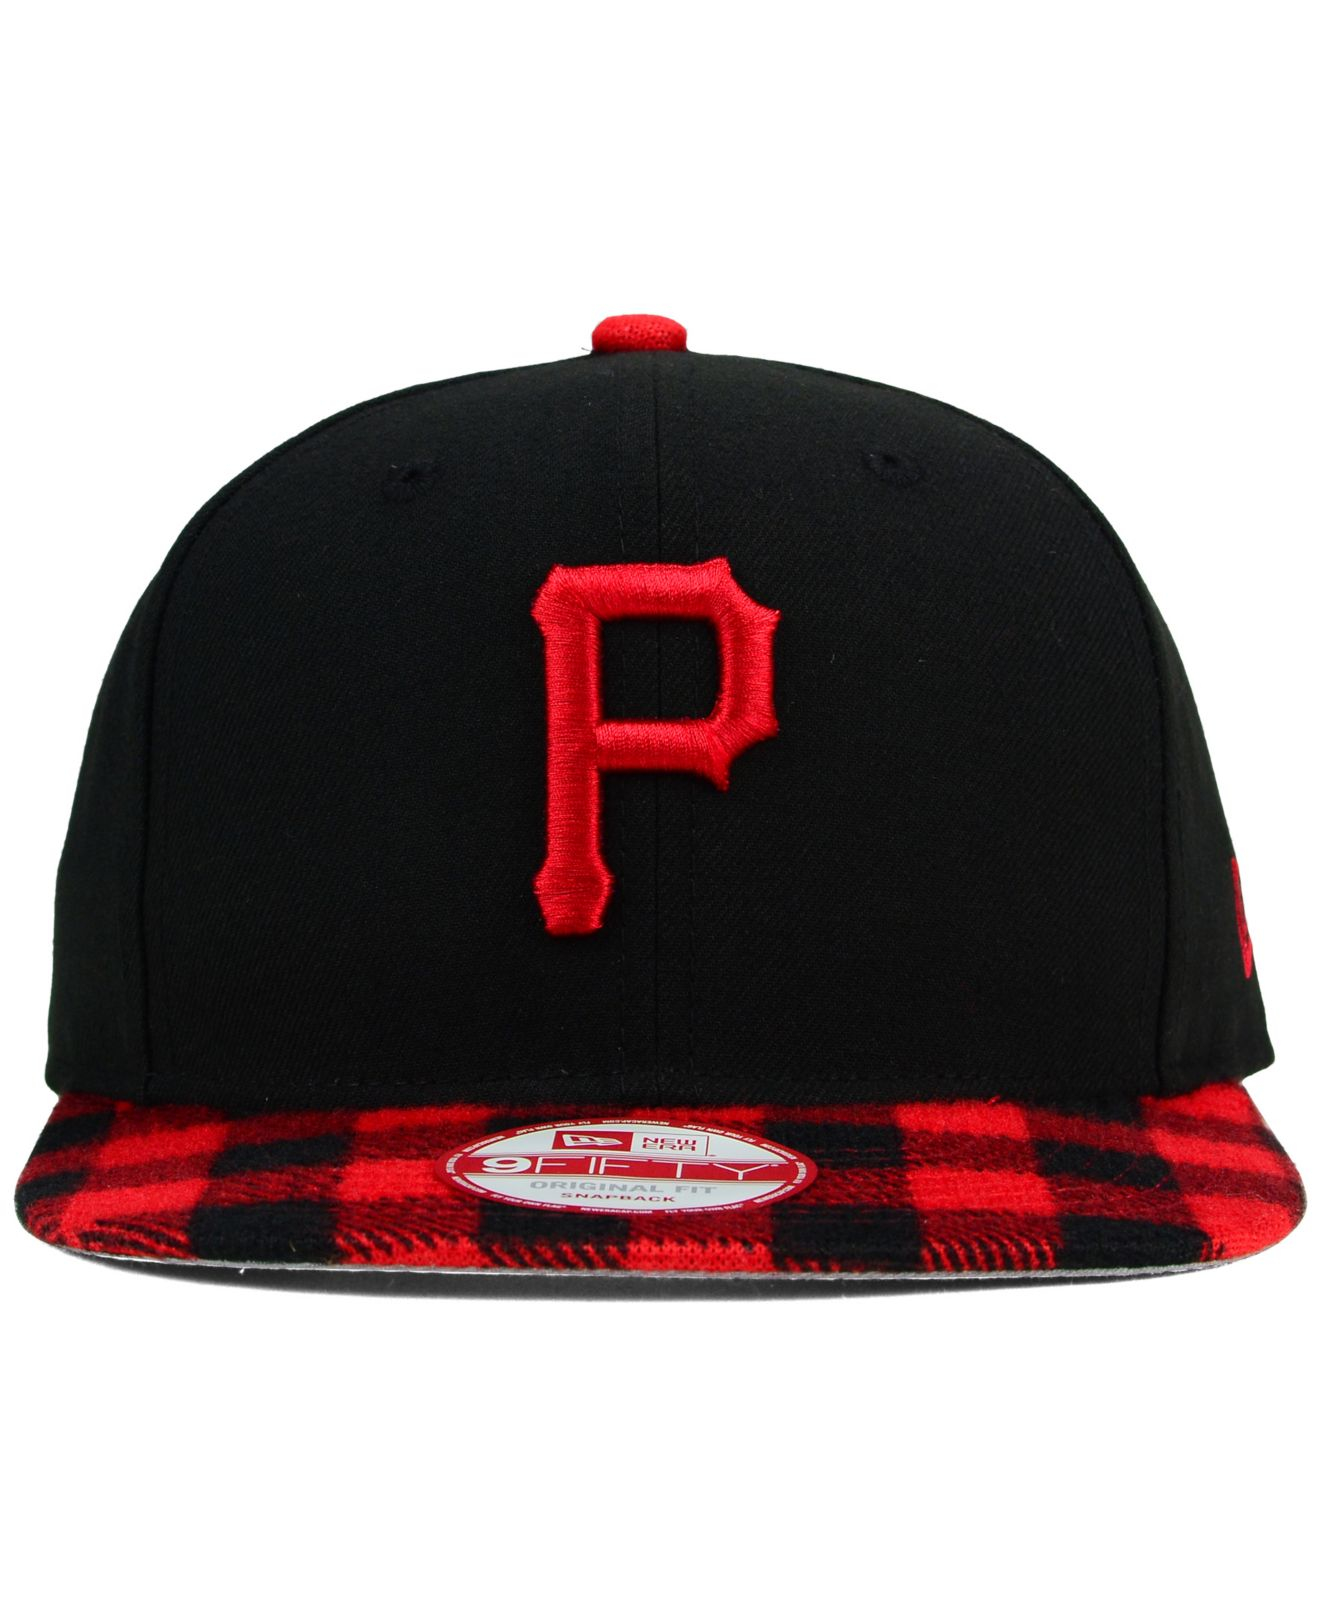 30c39535096 Lyst - Ktz Pittsburgh Pirates Premium Plaid 9fifty Snapback Cap in ...